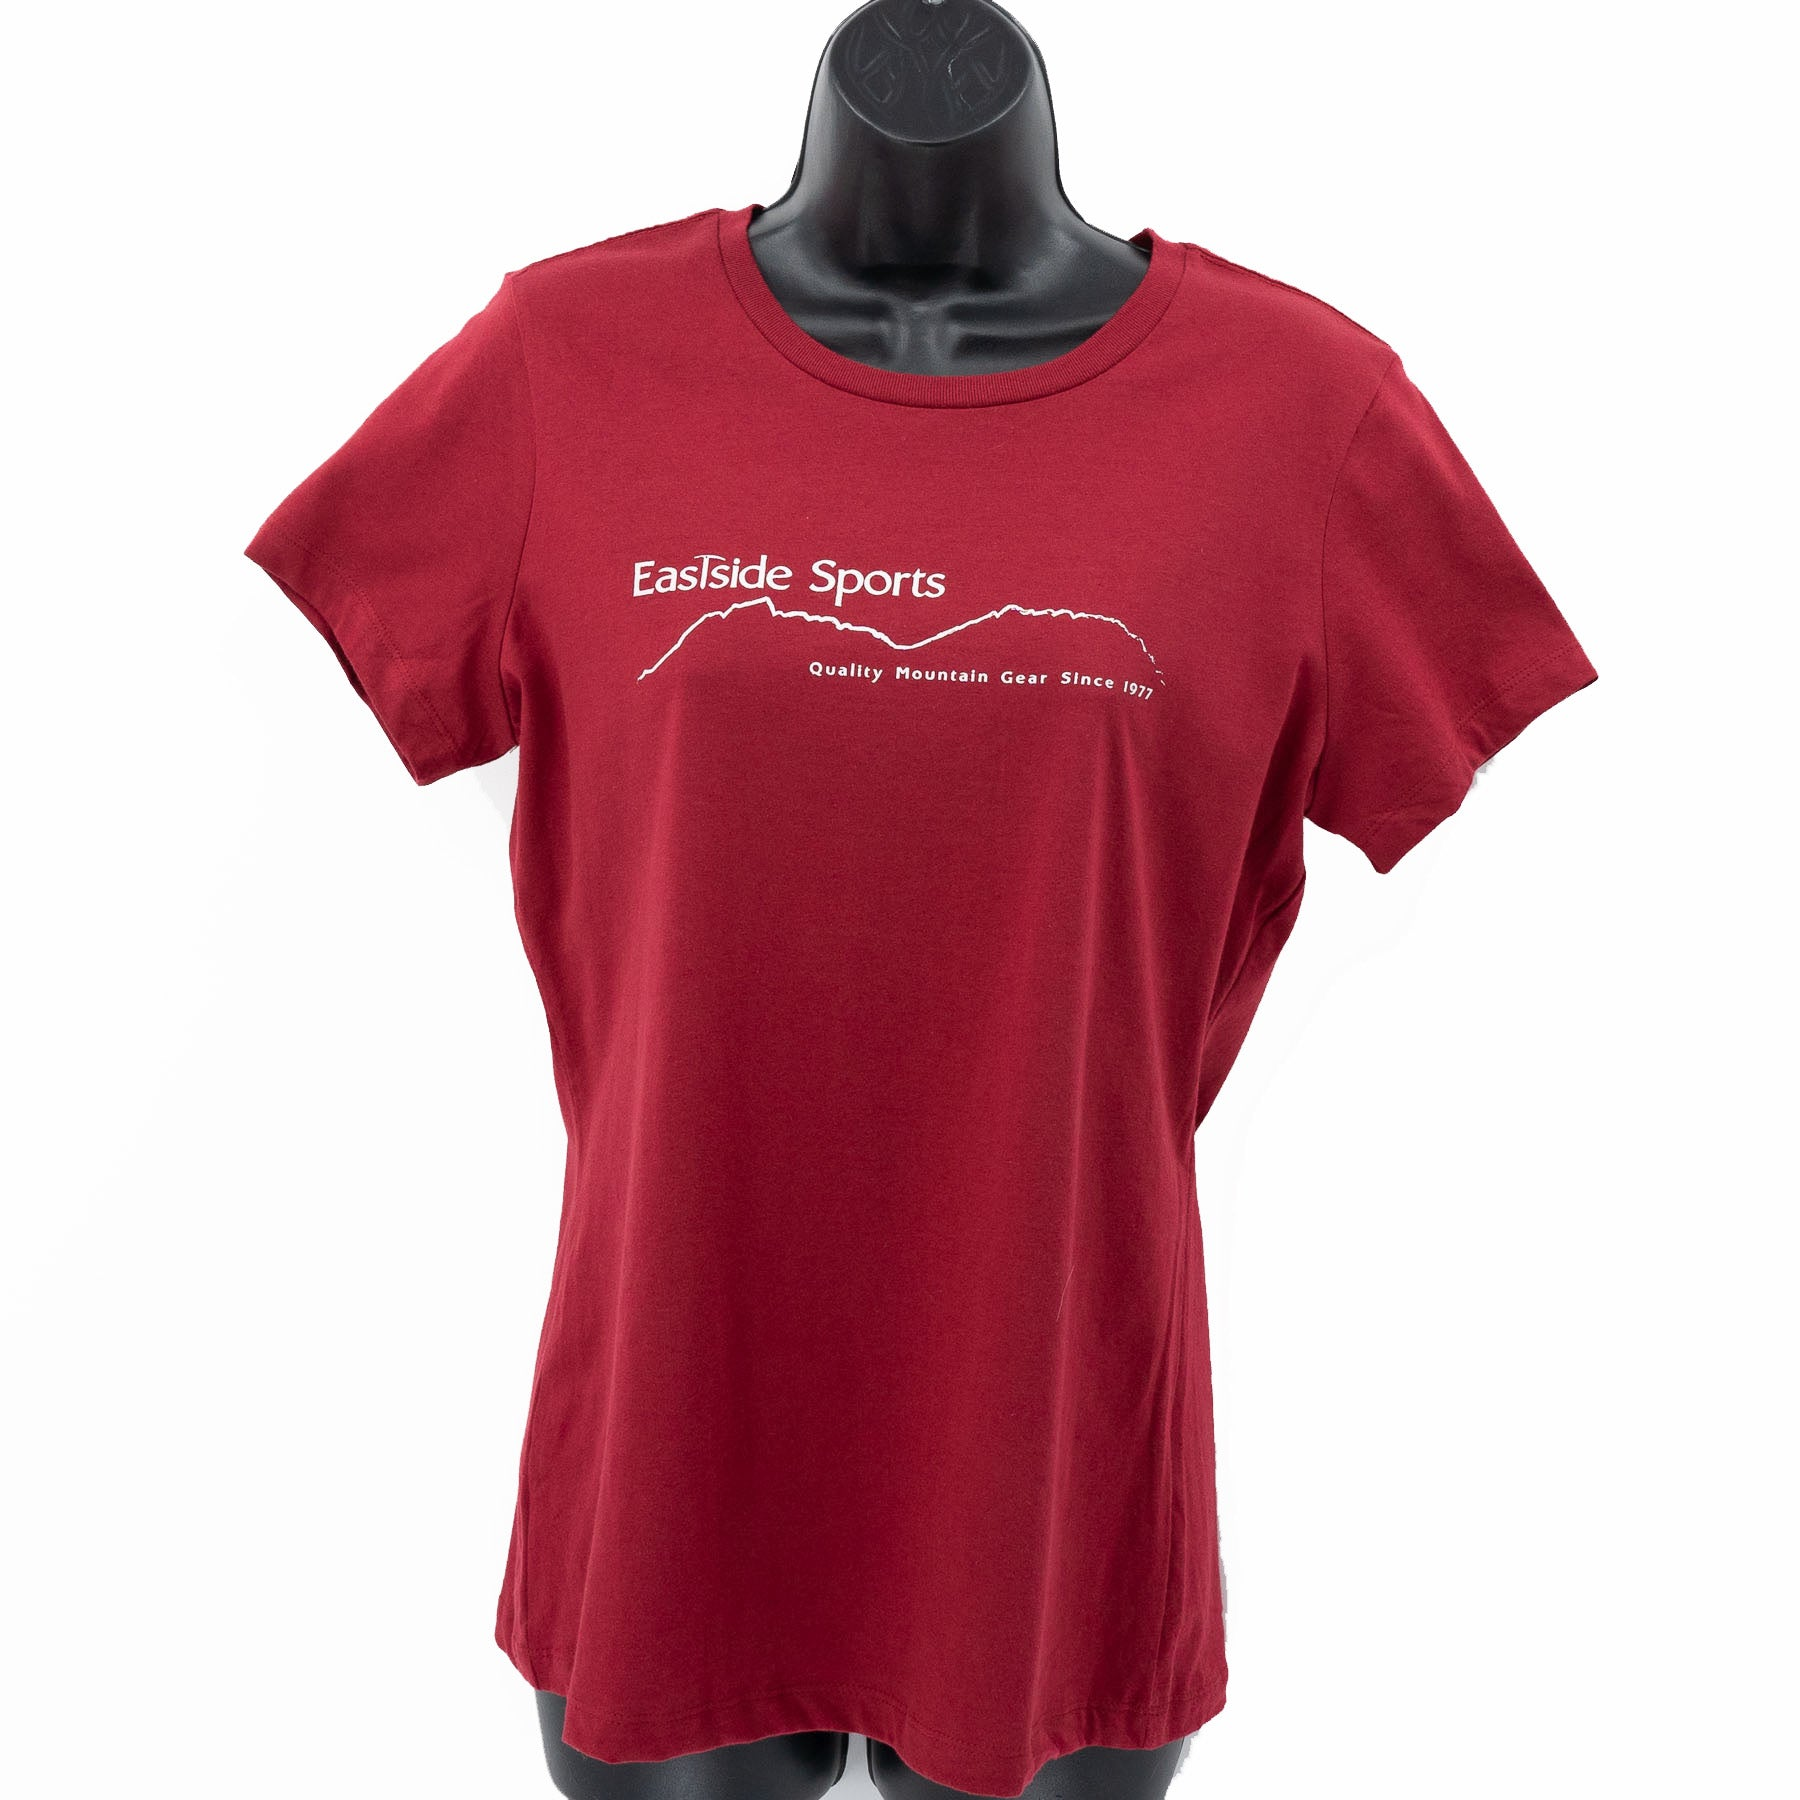 the sangria color of the Eastside Sports logo tee shirt women's